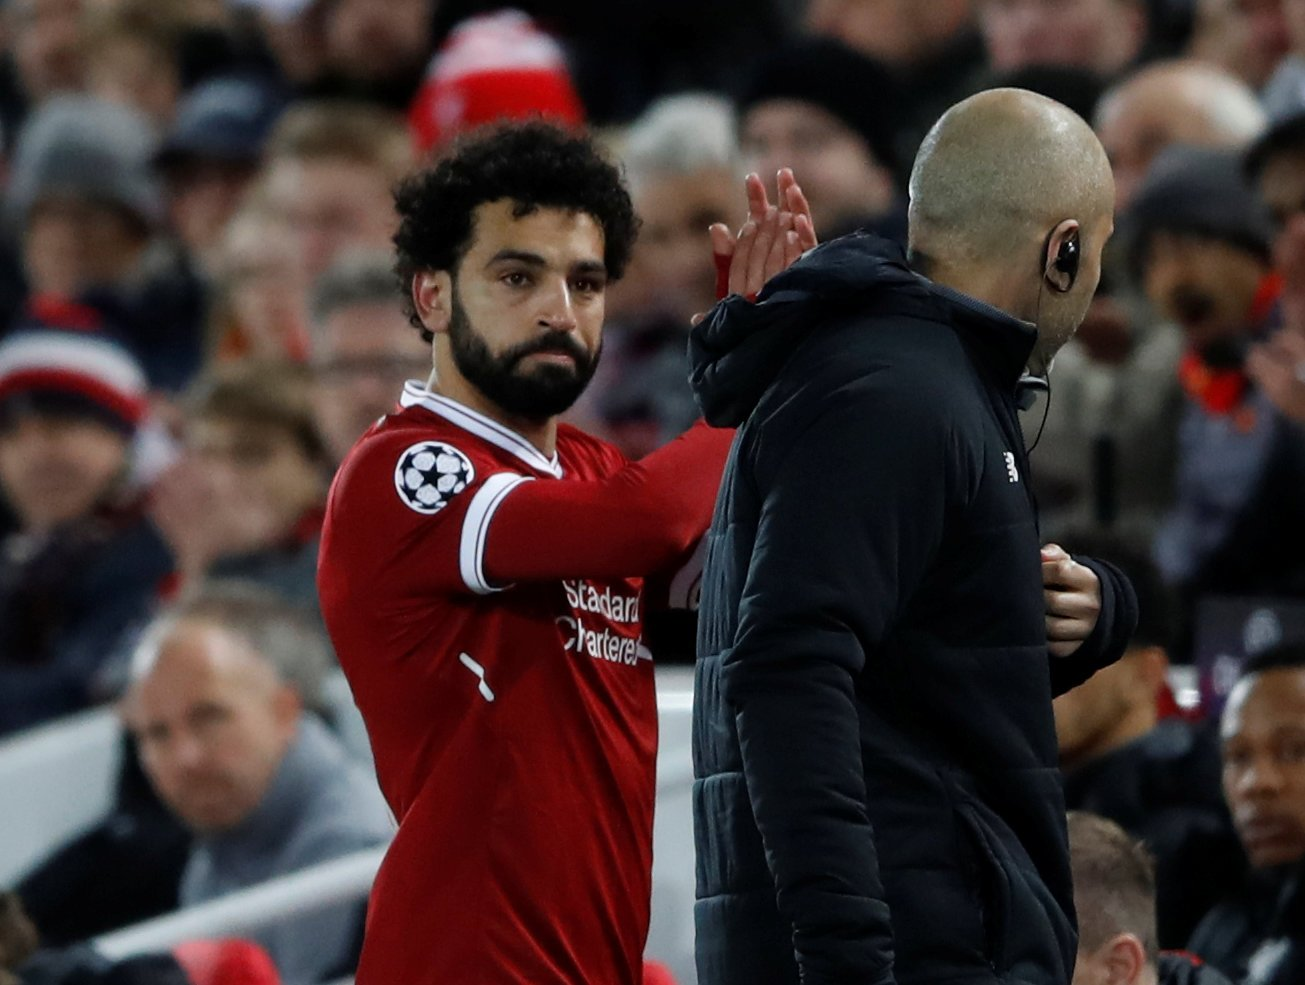 Mohamed Salah comes off injured in the Champions League semi-final